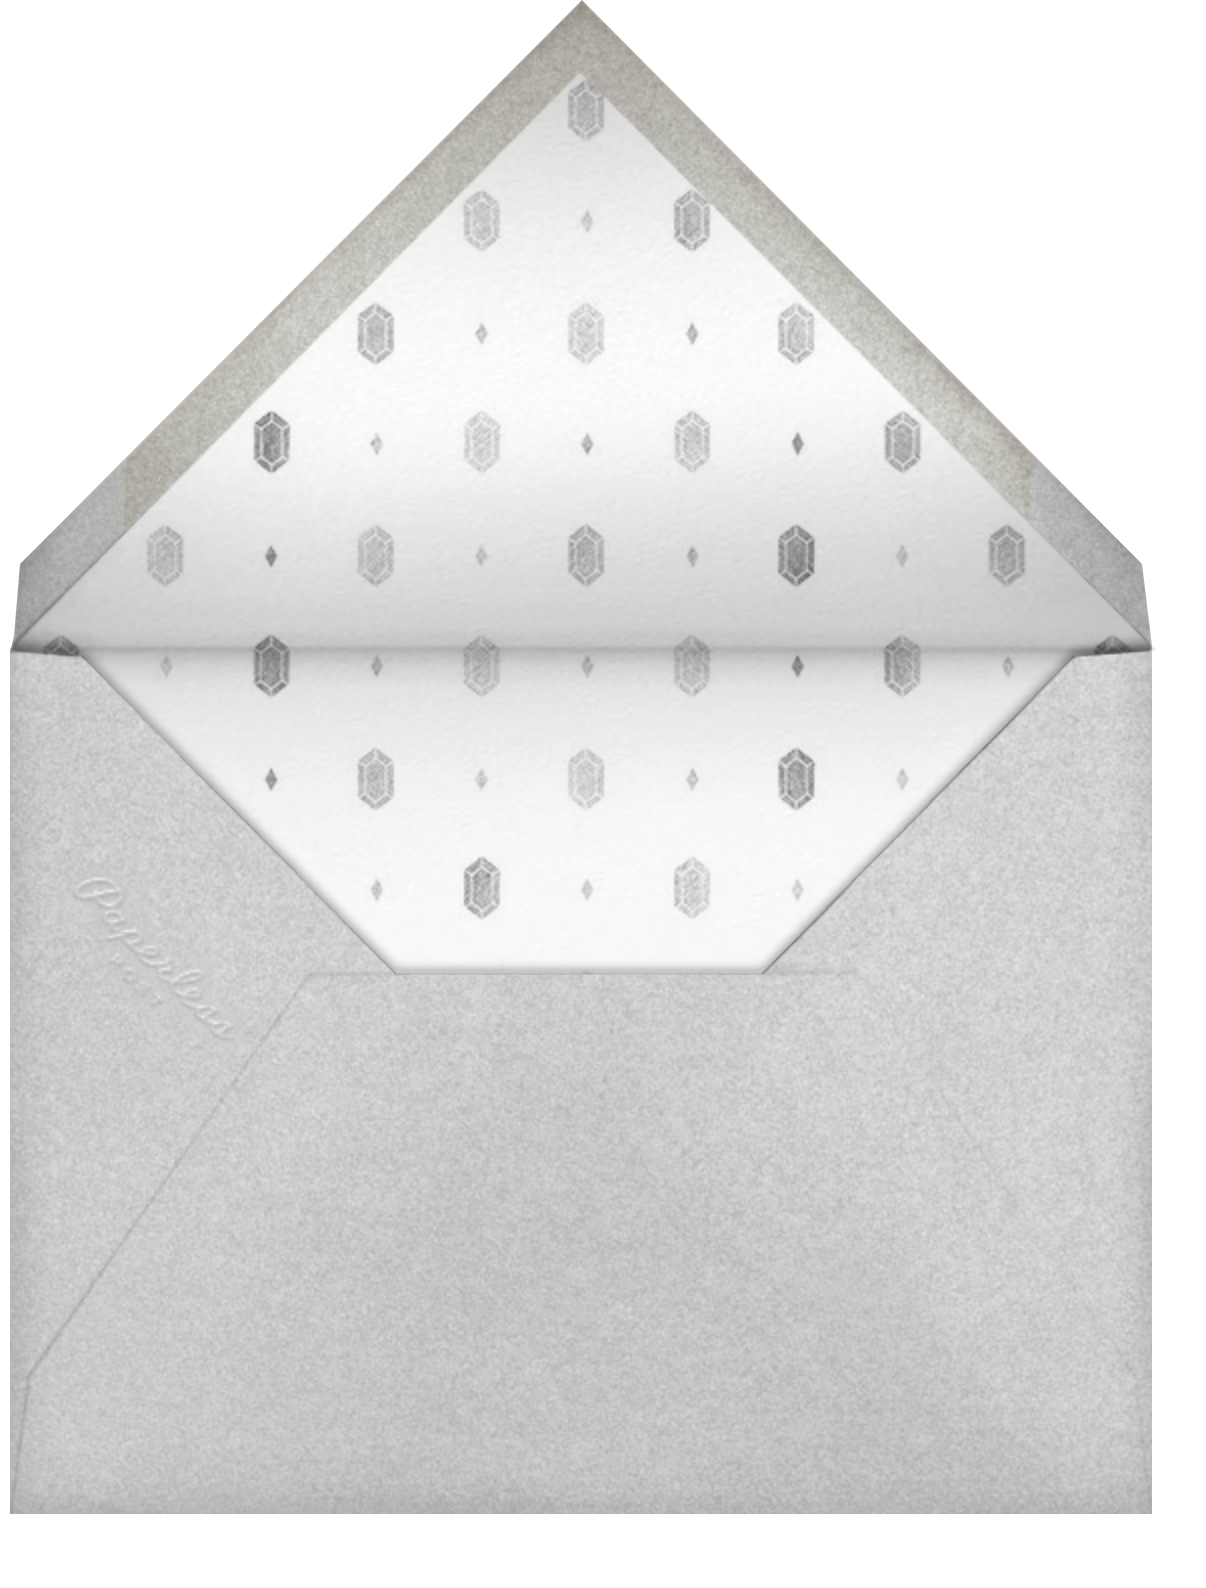 Snapshot Silver (Double Sided) - Tall - Paperless Post - Envelope